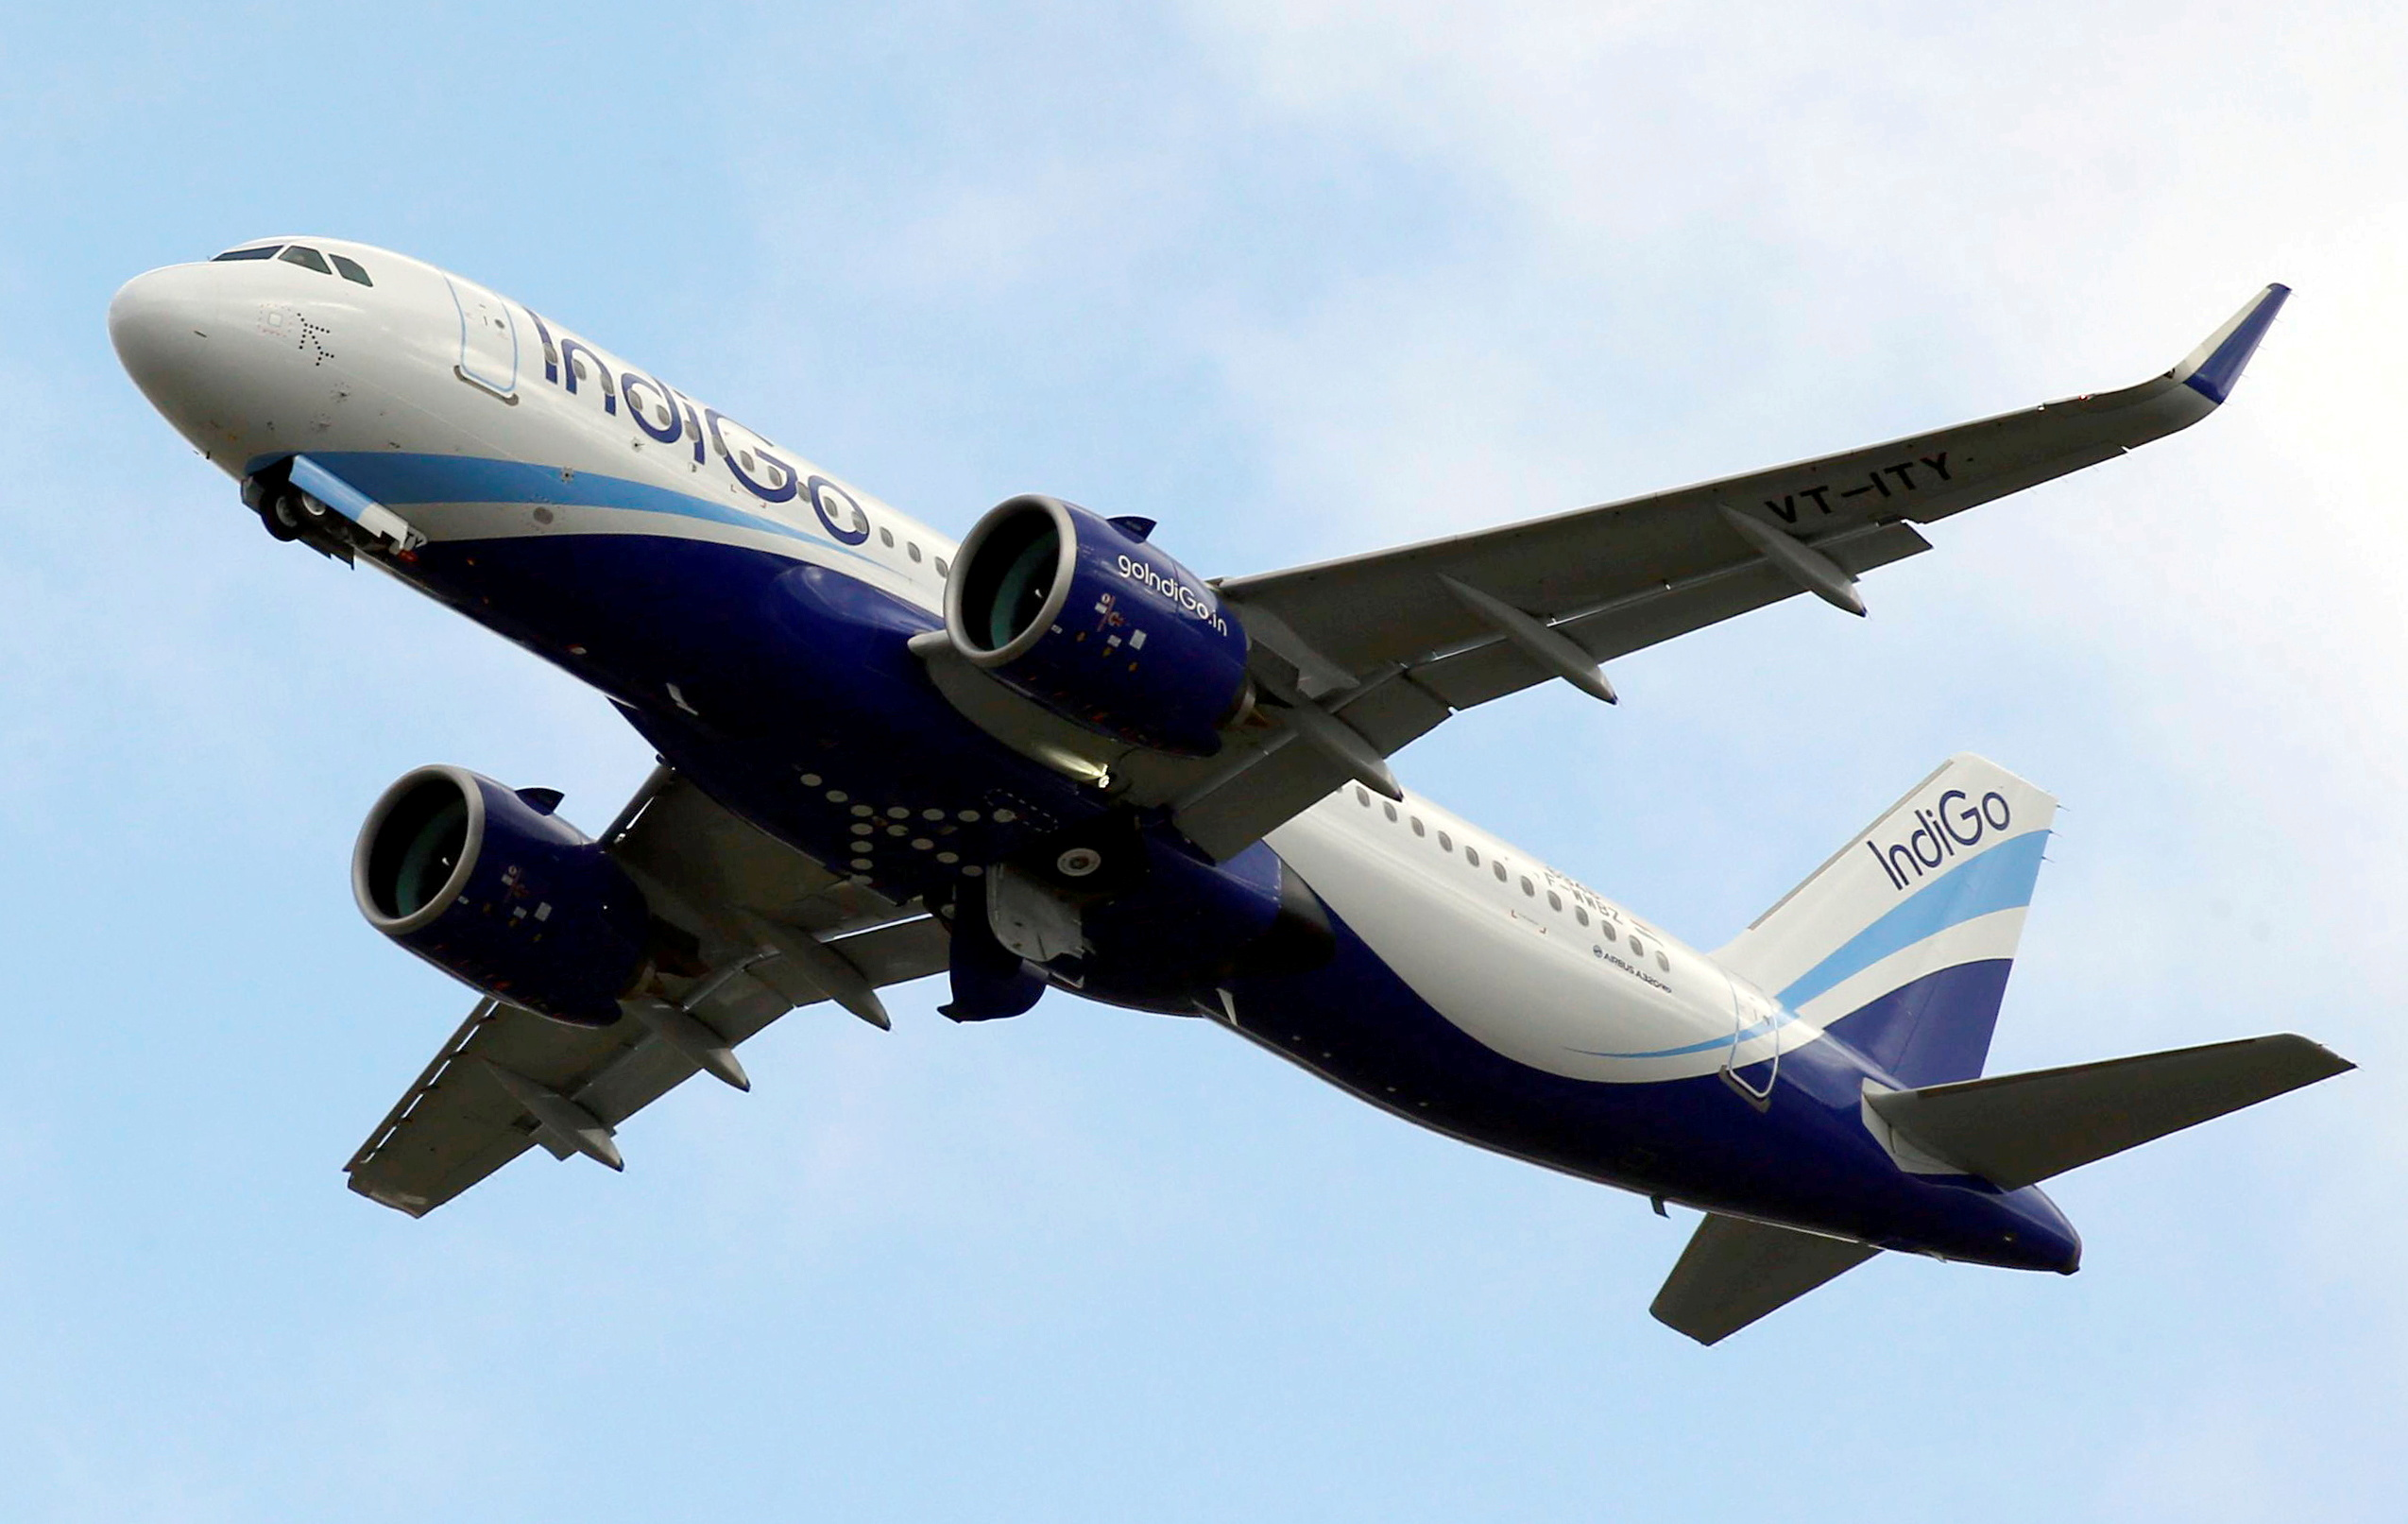 An IndiGo Airlines Airbus A320 aircraft takes off in Colomiers near Toulouse, France, October 19, 2017. REUTERS/Regis Duvignau/File Photo